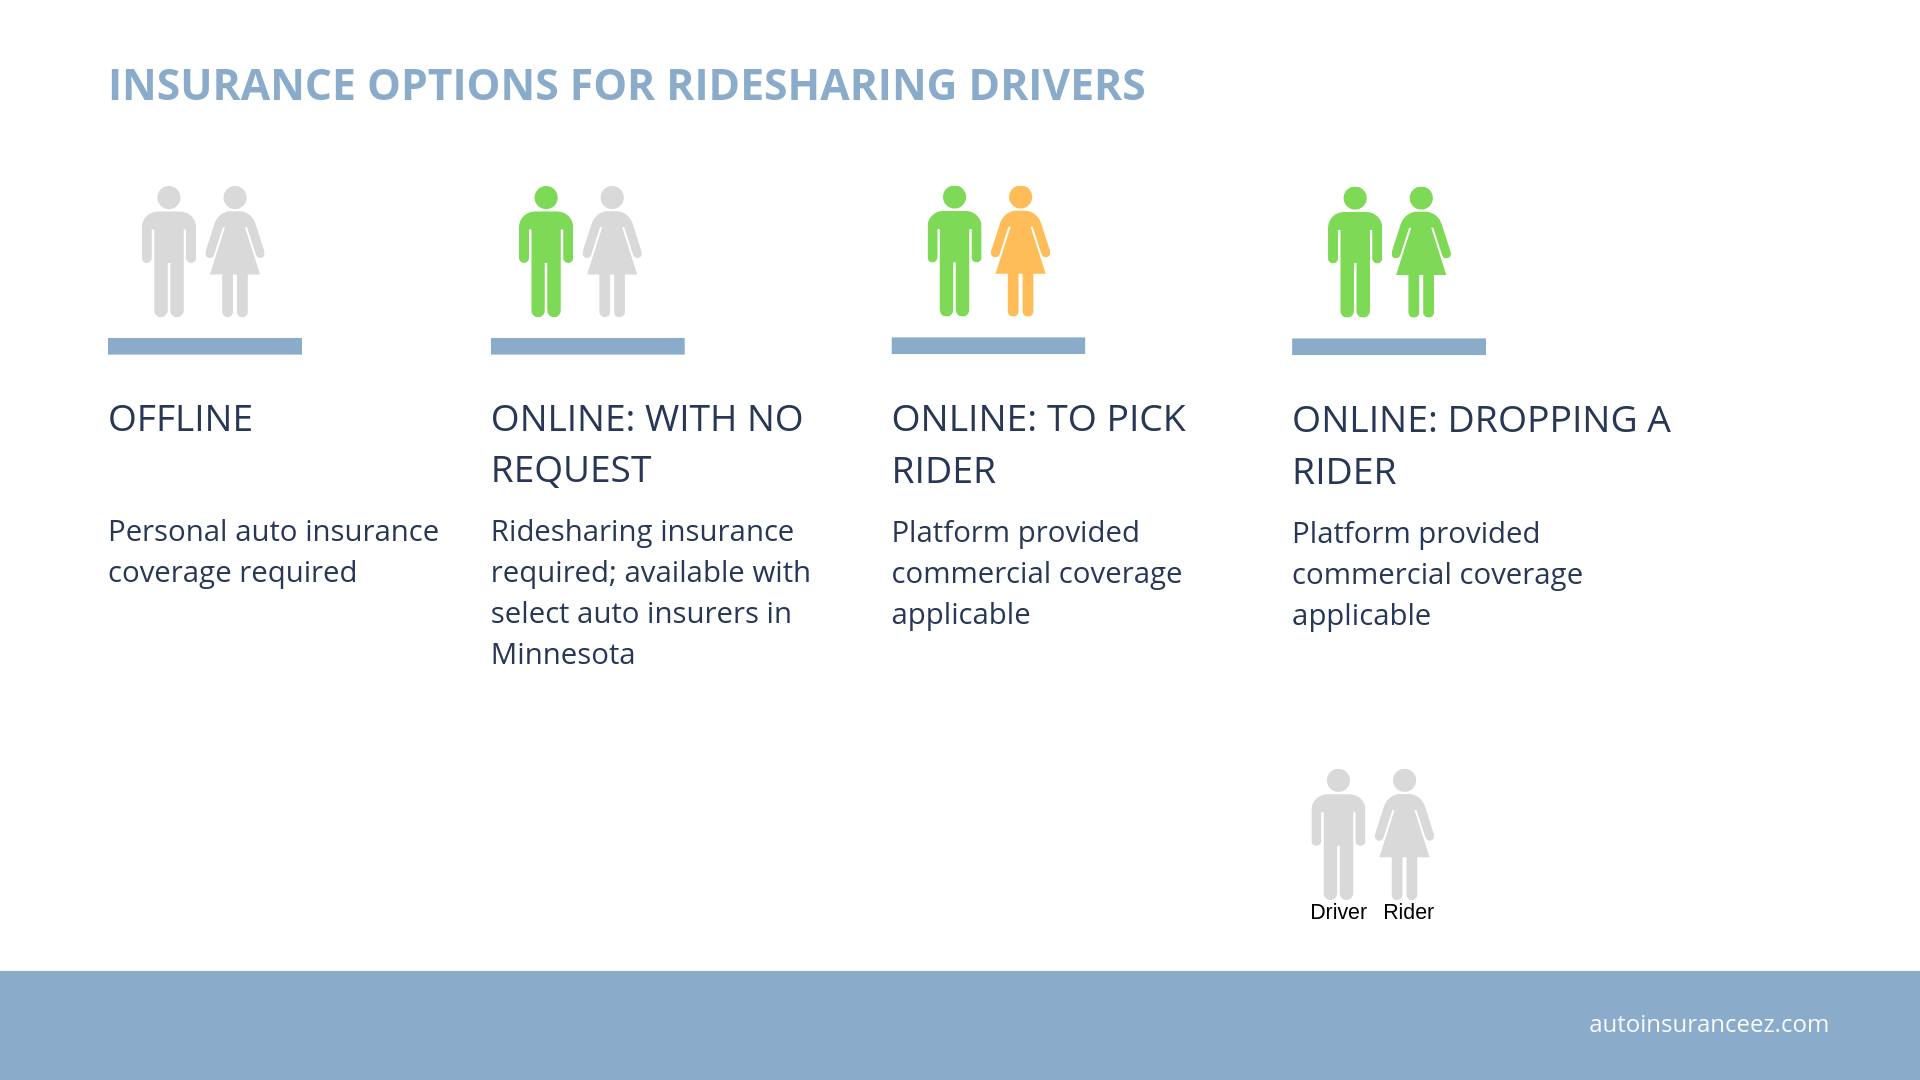 Ridesharing insurance options